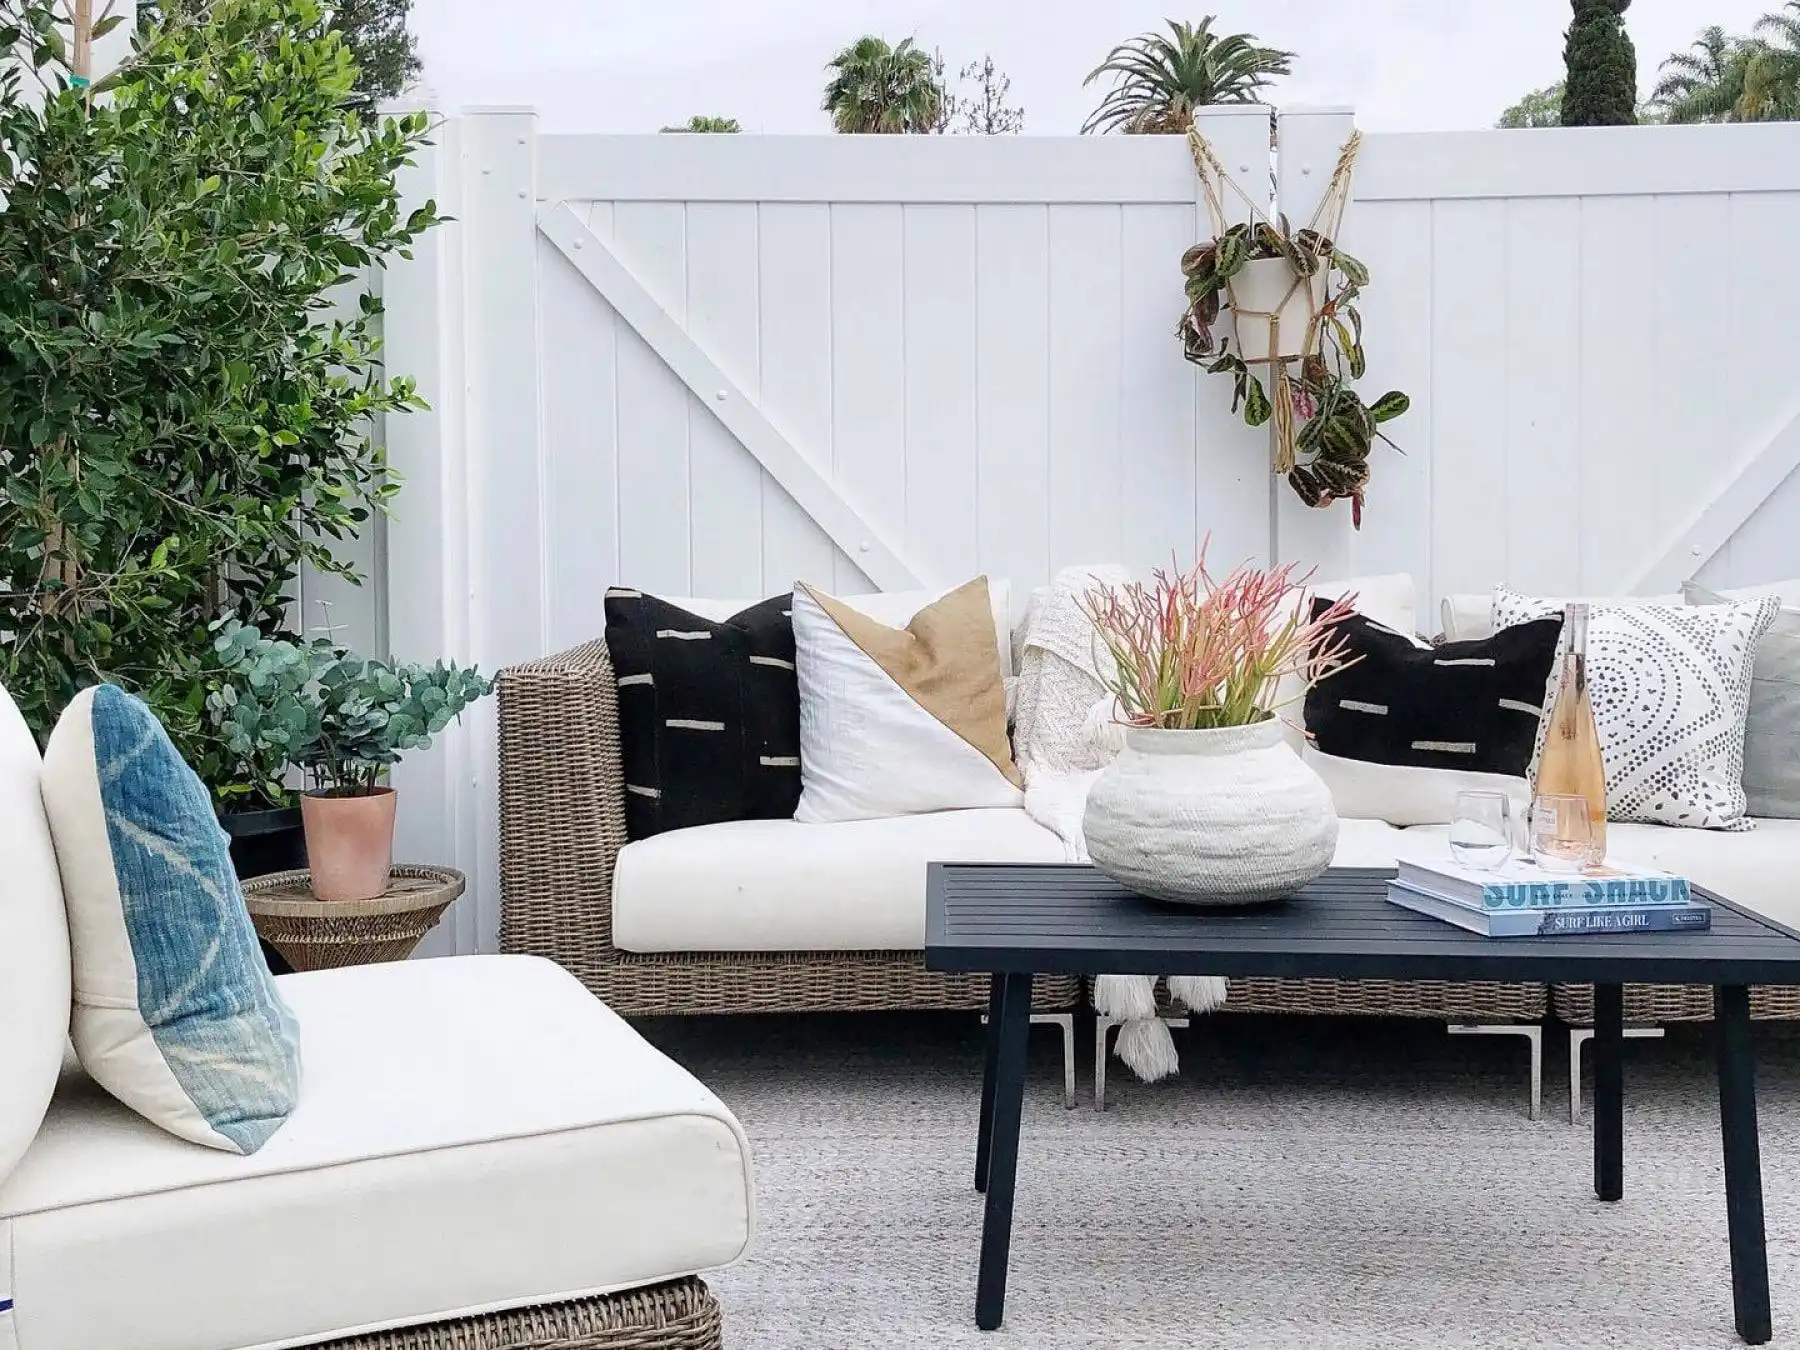 Outdoor Wicker couch and chair